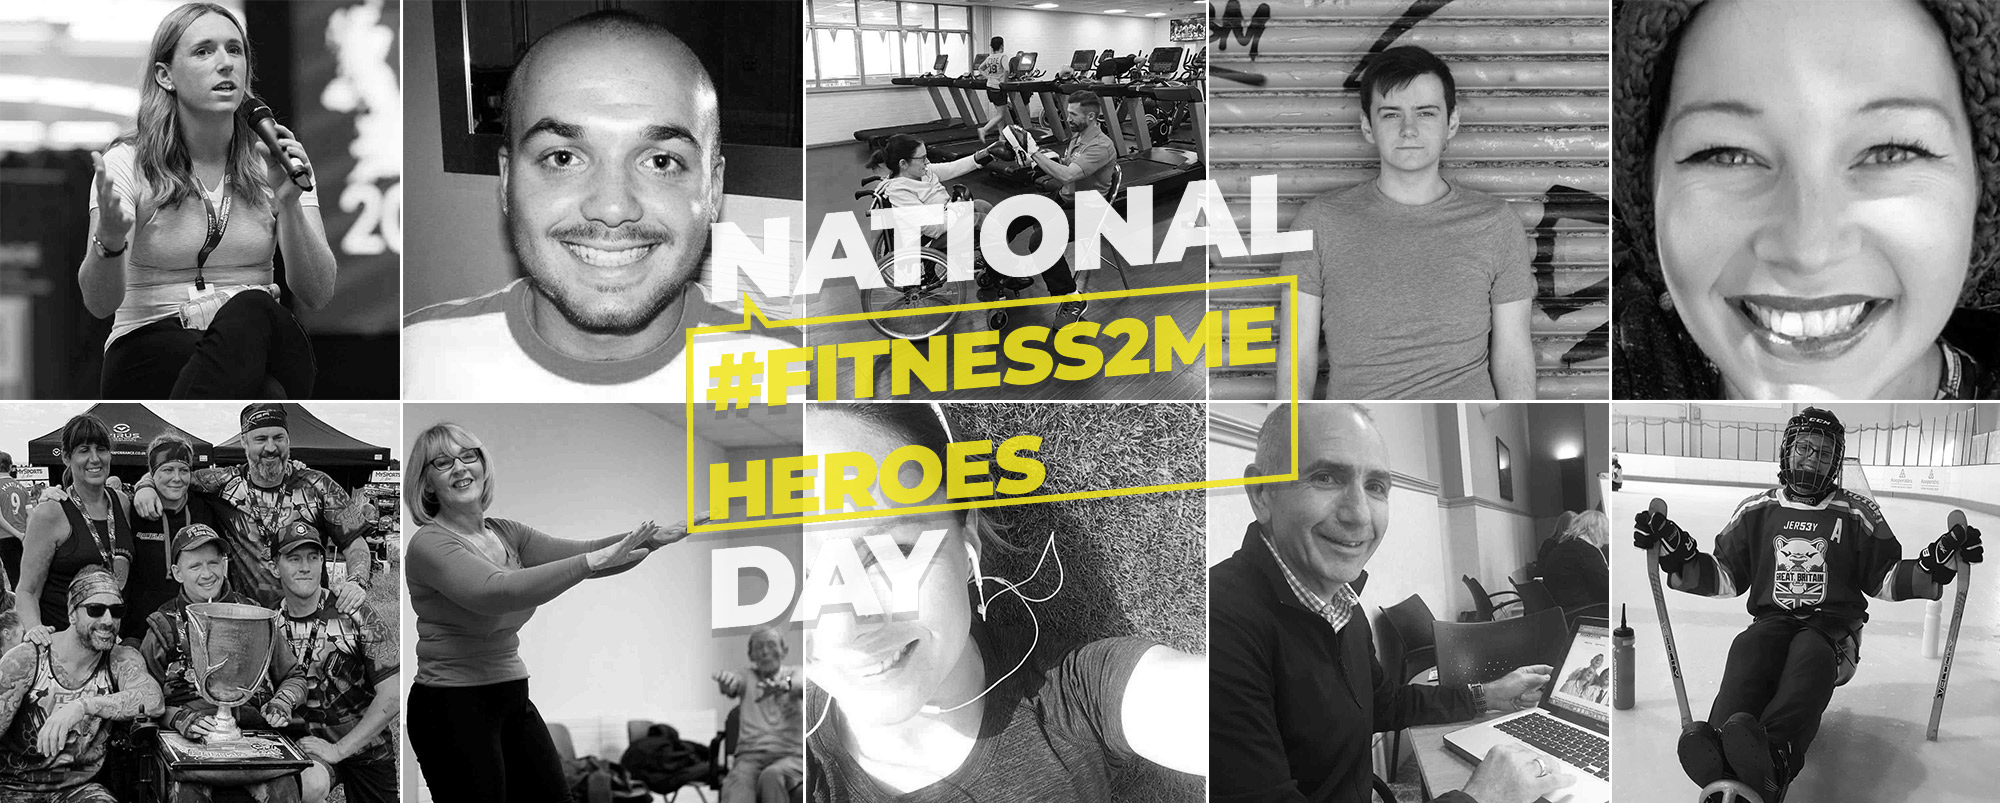 Twelve Fitness2Me heroes help inspire UK into action for National Fitness Day